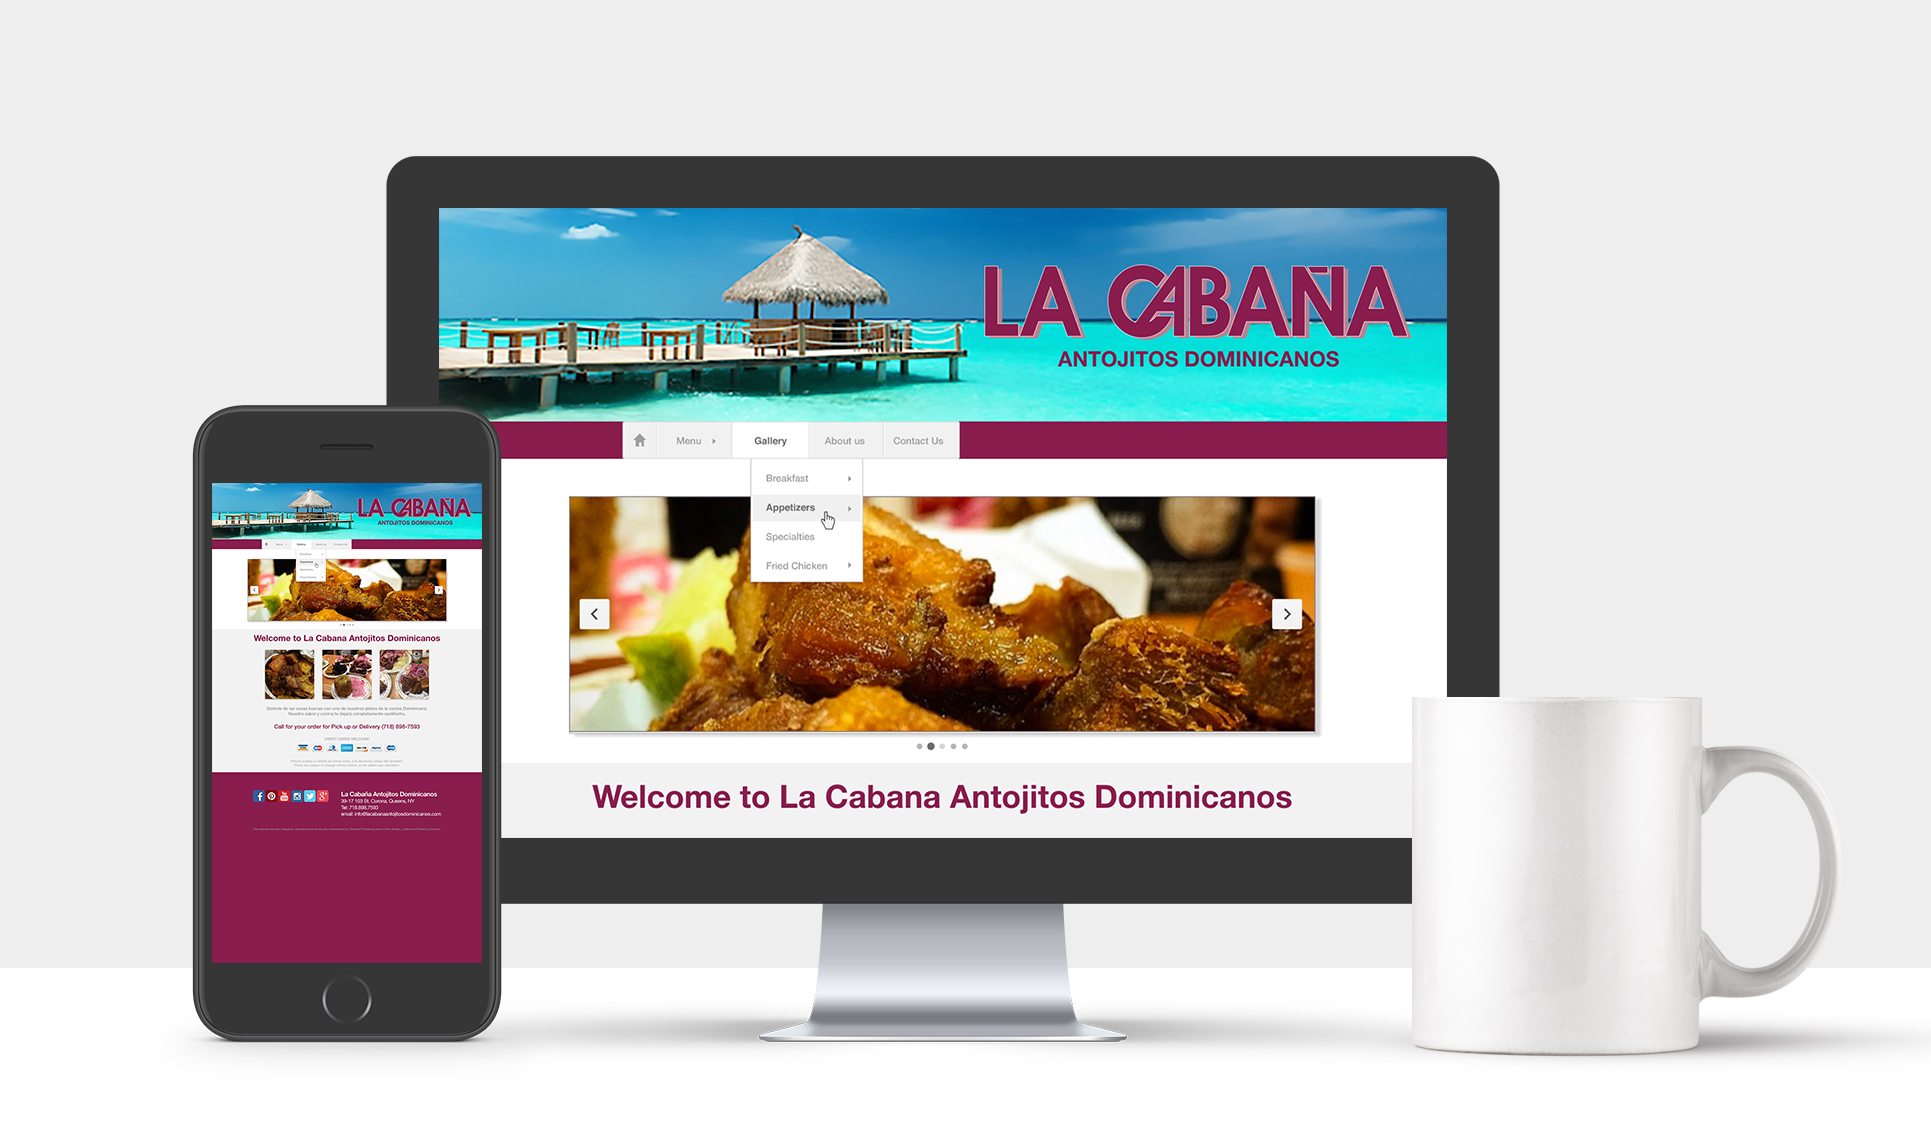 Website for La Cabaña Dominican Restaurant